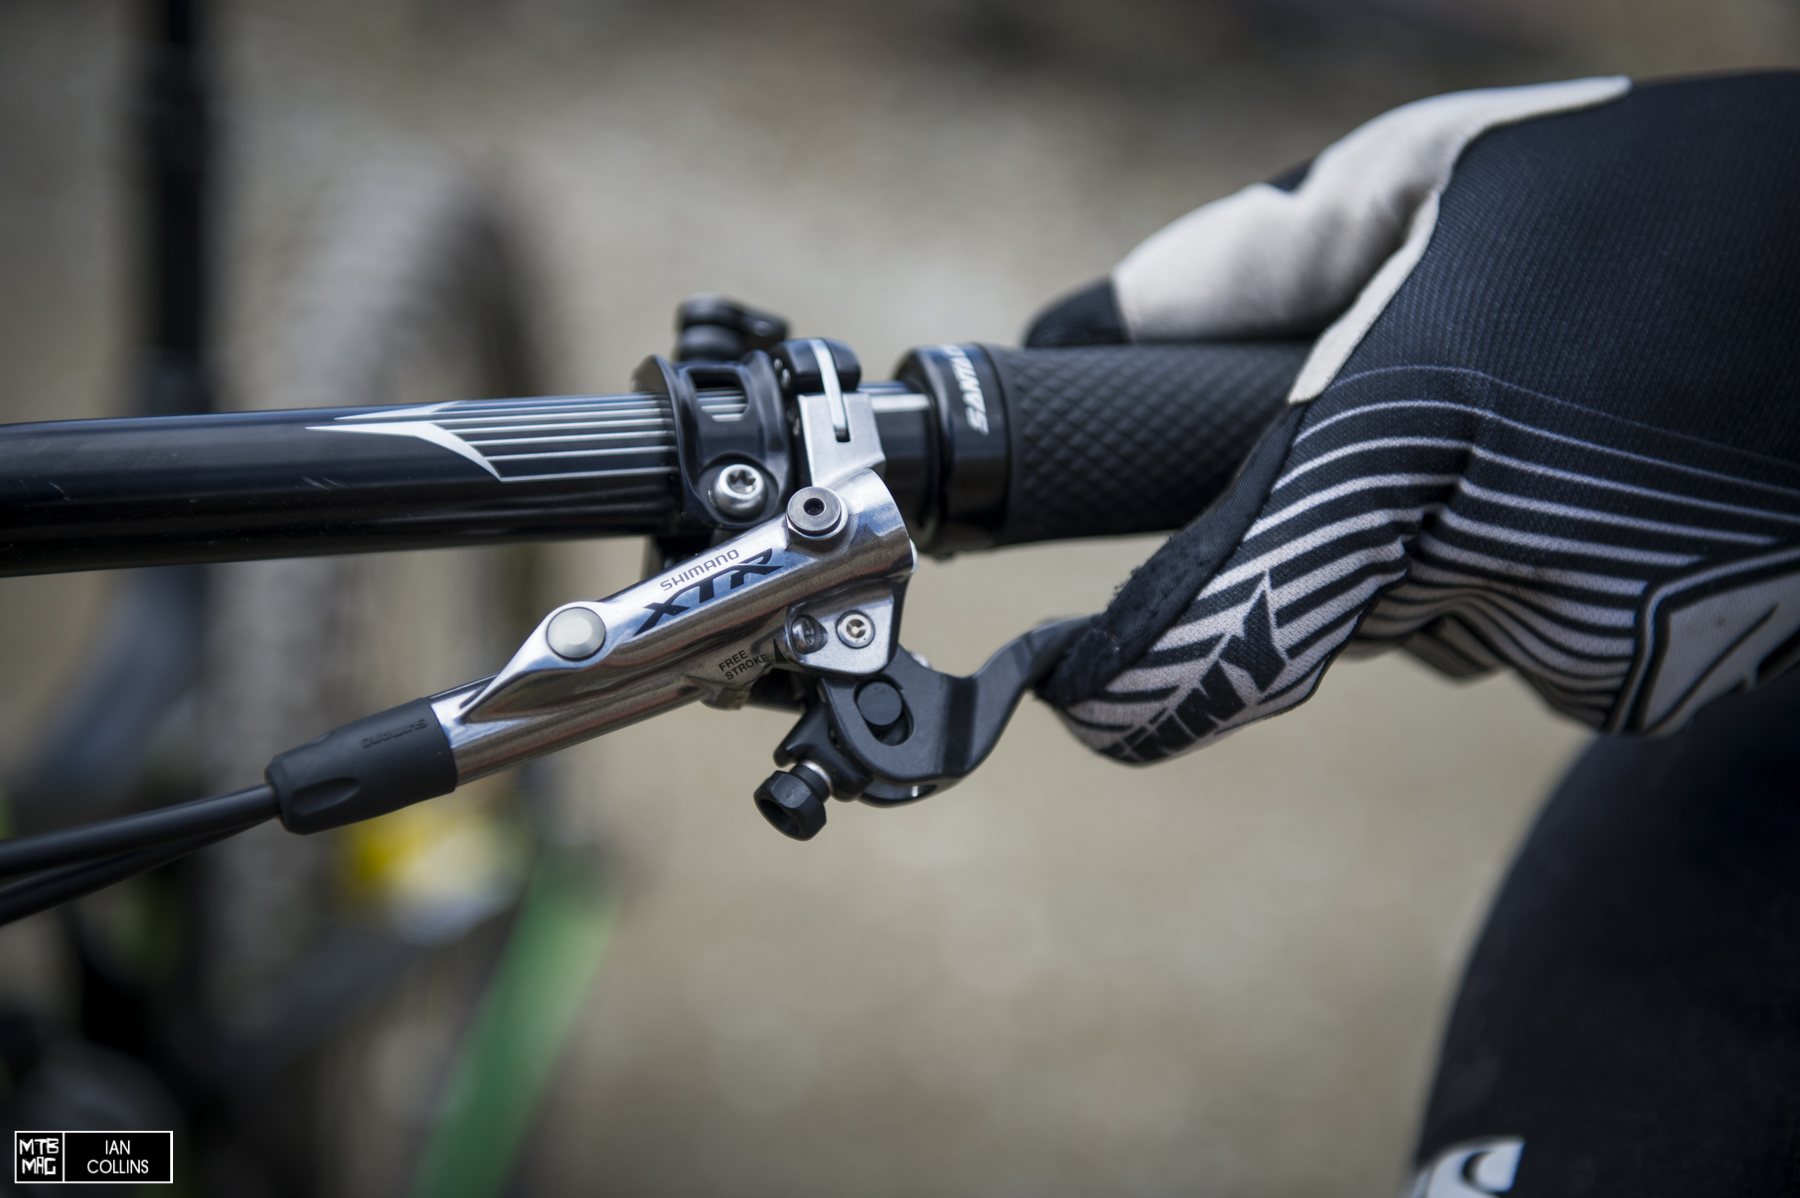 XTR levers keep it light, Saint calipers keep it strong.